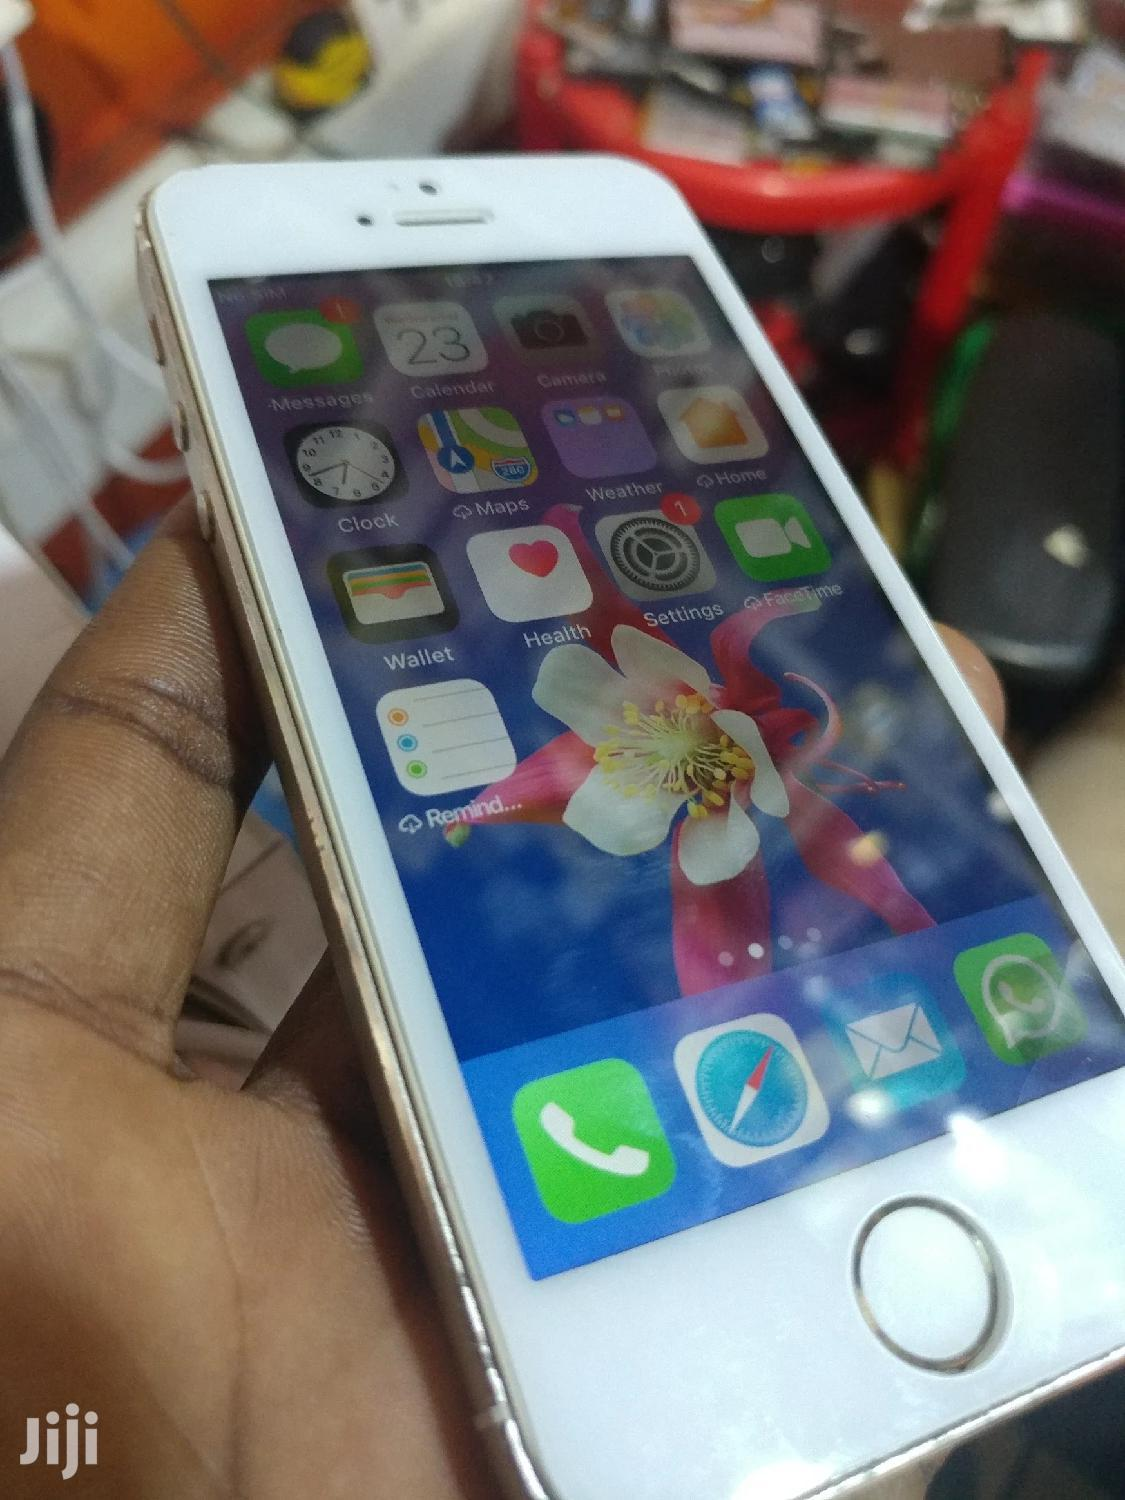 Archive: Apple iPhone 5s 16 GB Gray